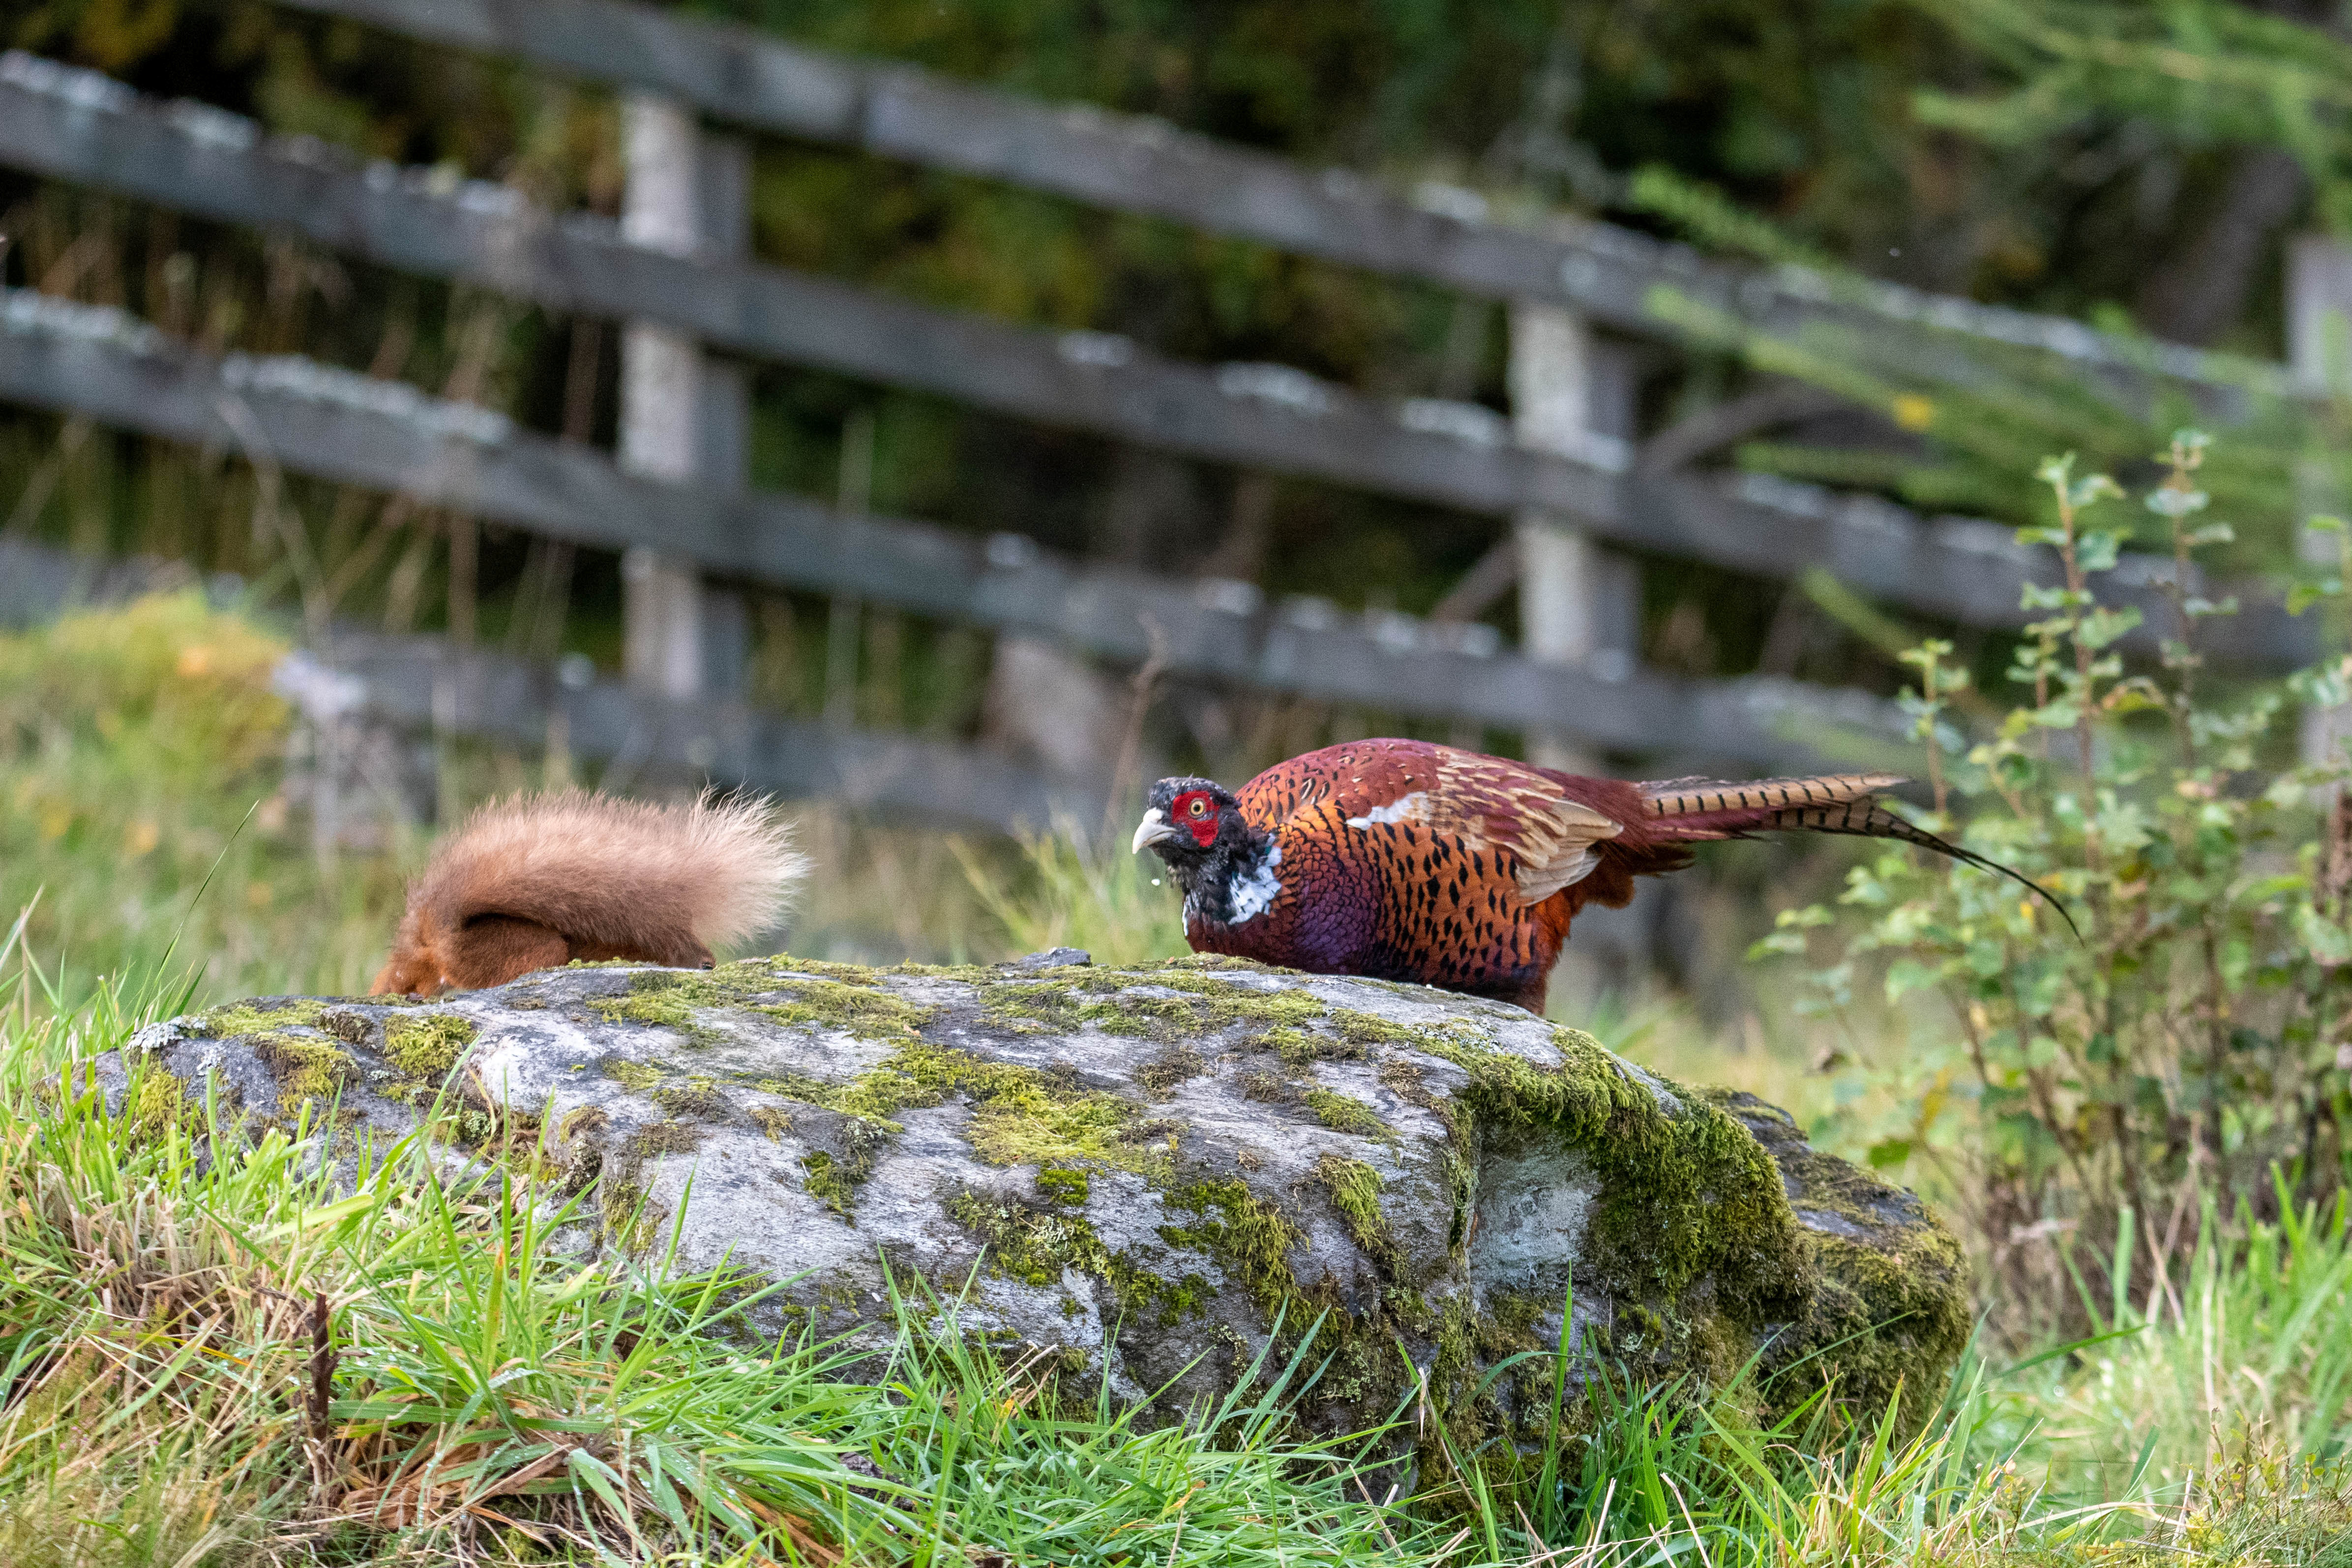 Red Squirrel And Pheasant Face Off Over Some Nuts